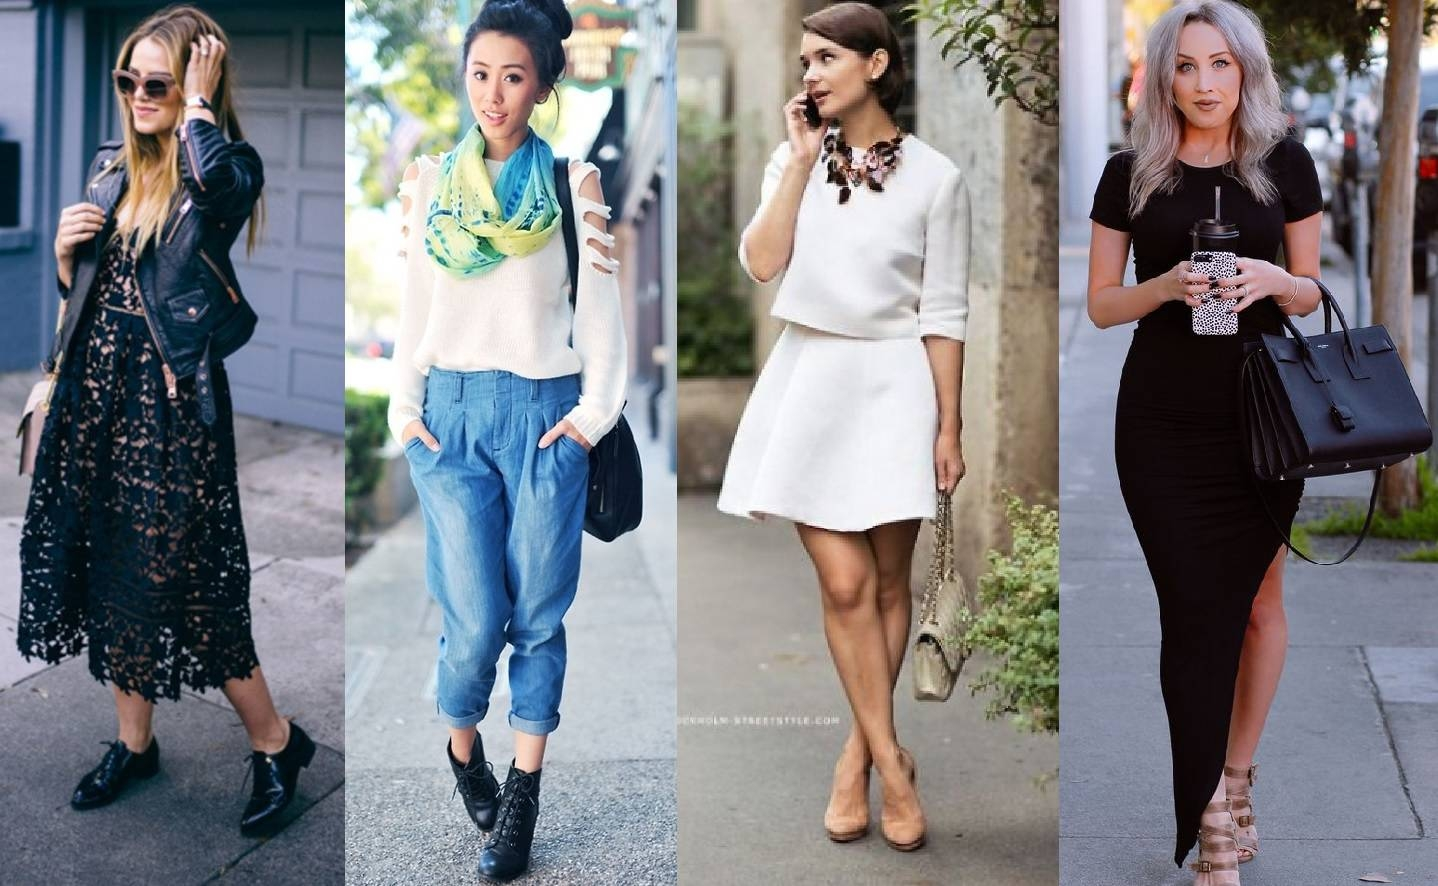 Fashion Ideas for Women on the First Date